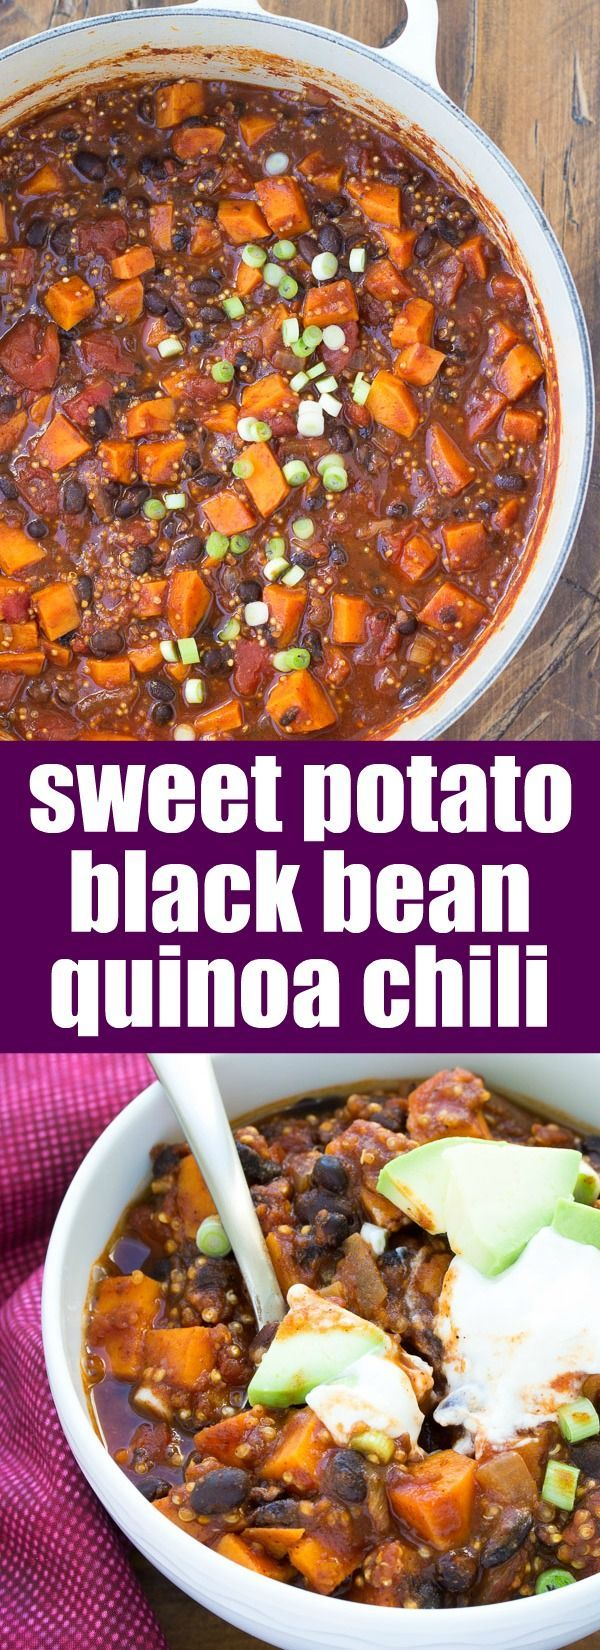 Sweet Potato and Black Bean Chili with Quinoa. Vegetarian, vegan option, fast and easy to make! | http://www.kristineskitchenblog.com (Paleo Vegetarian Protein)